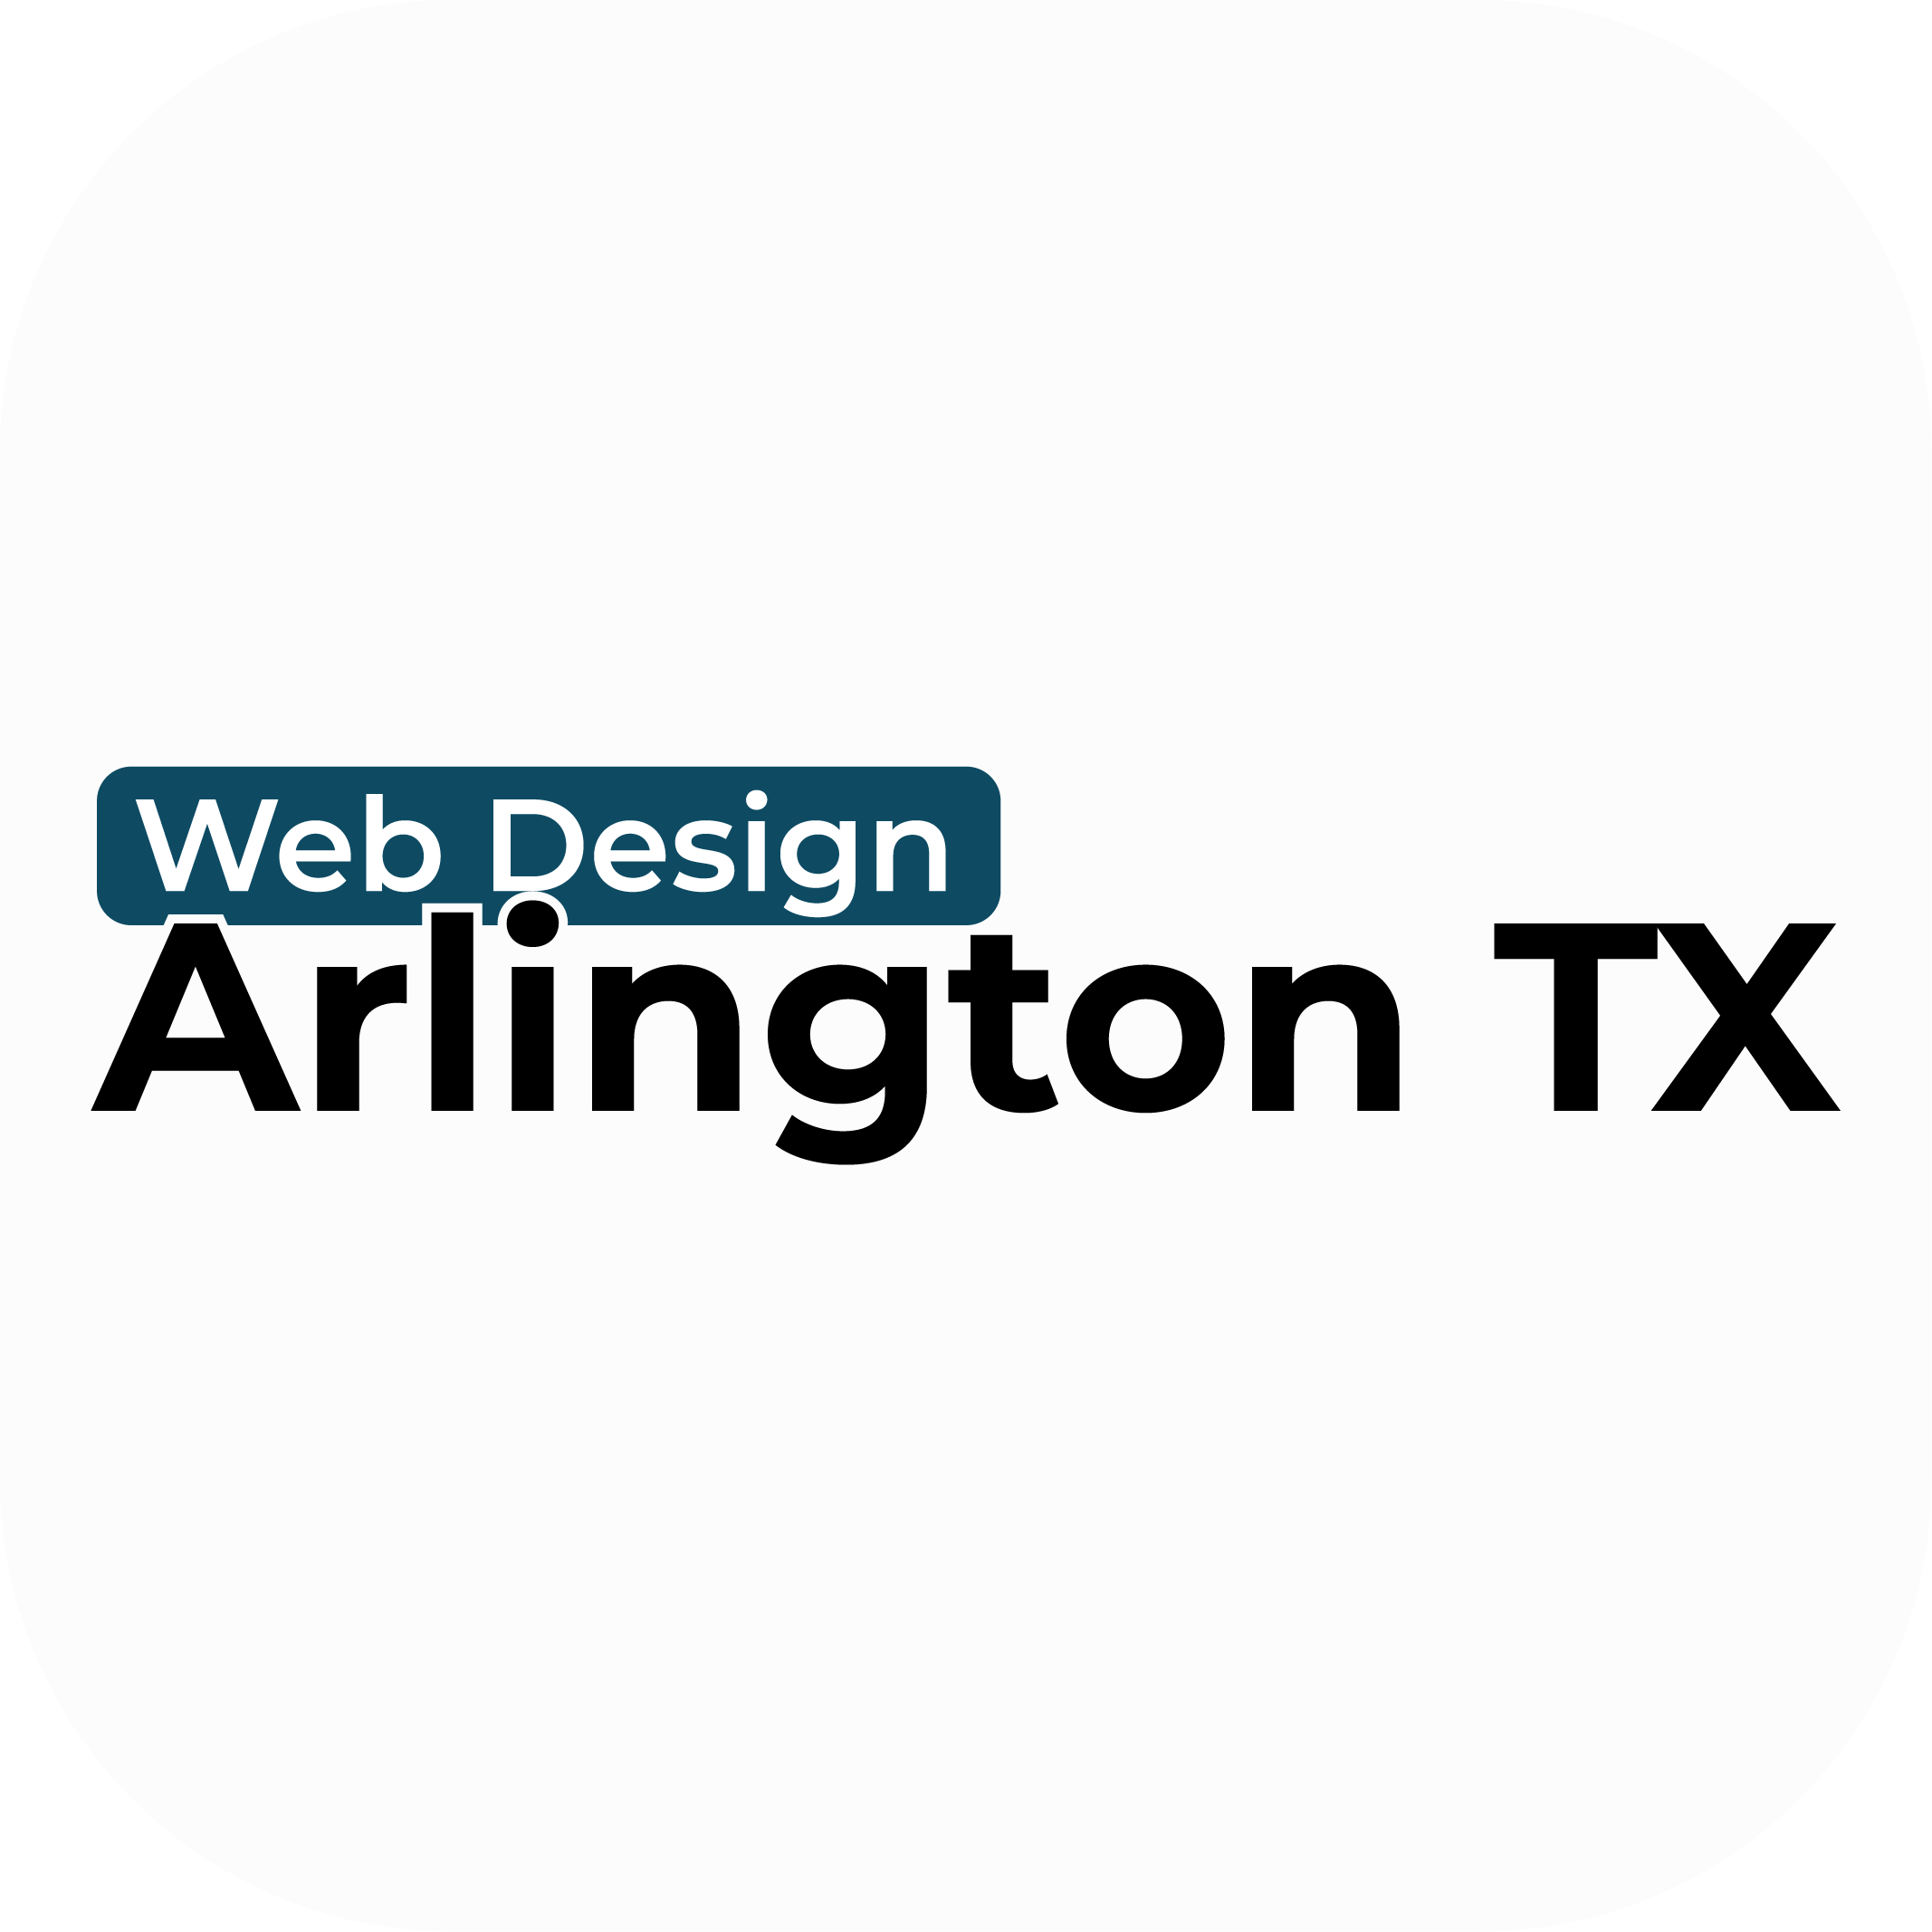 Web Design Arlington Texas